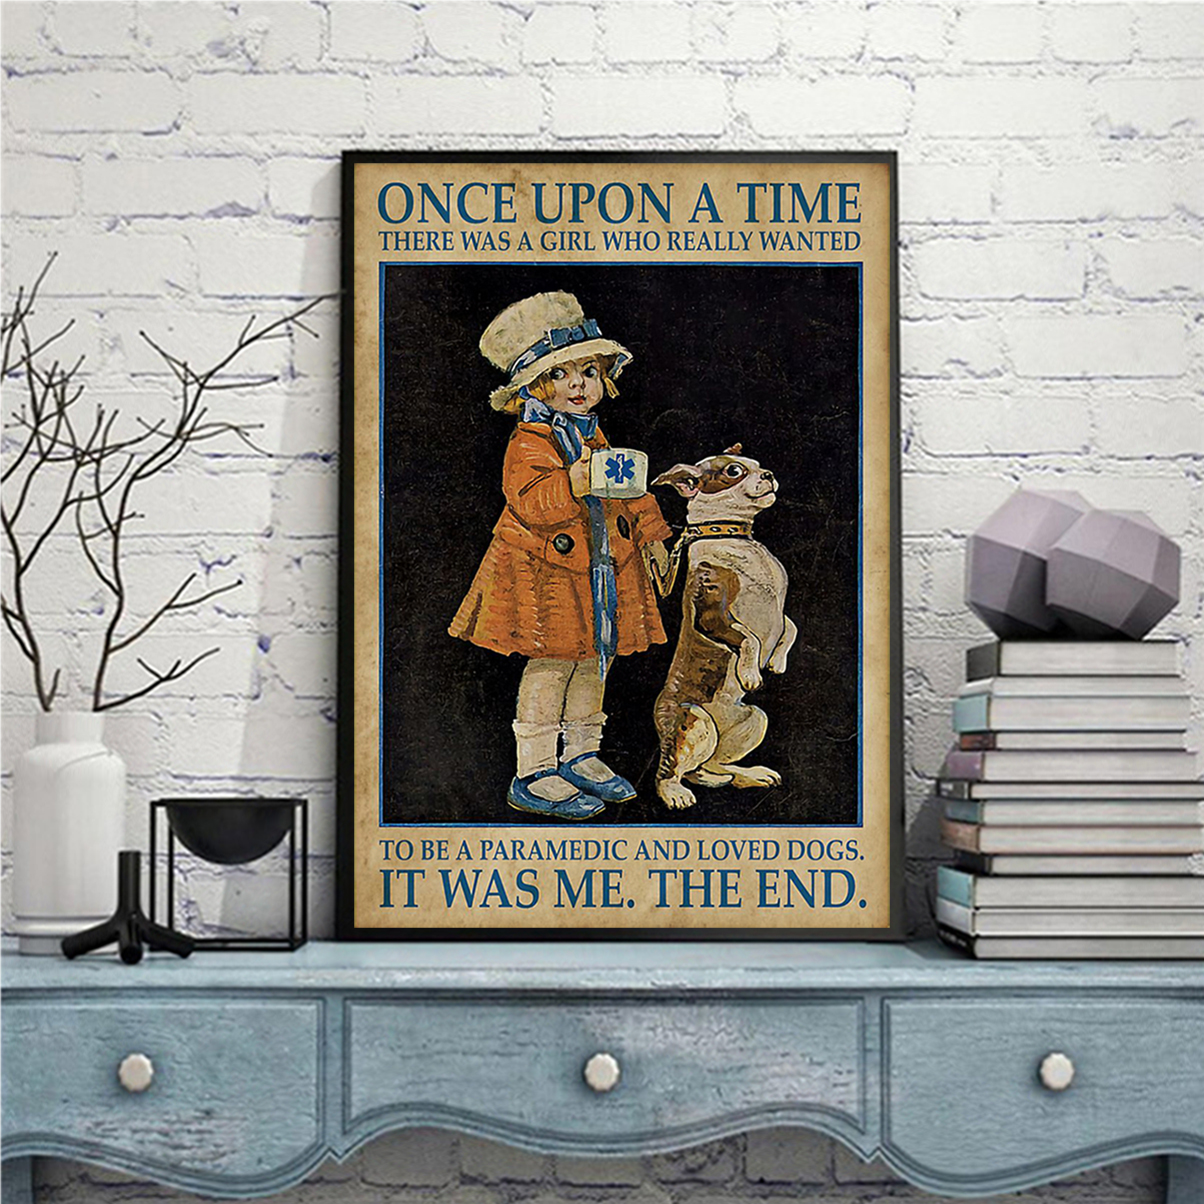 Once upon a time there was a girl who really wanted to be a paramedic and loved dogs poster A1